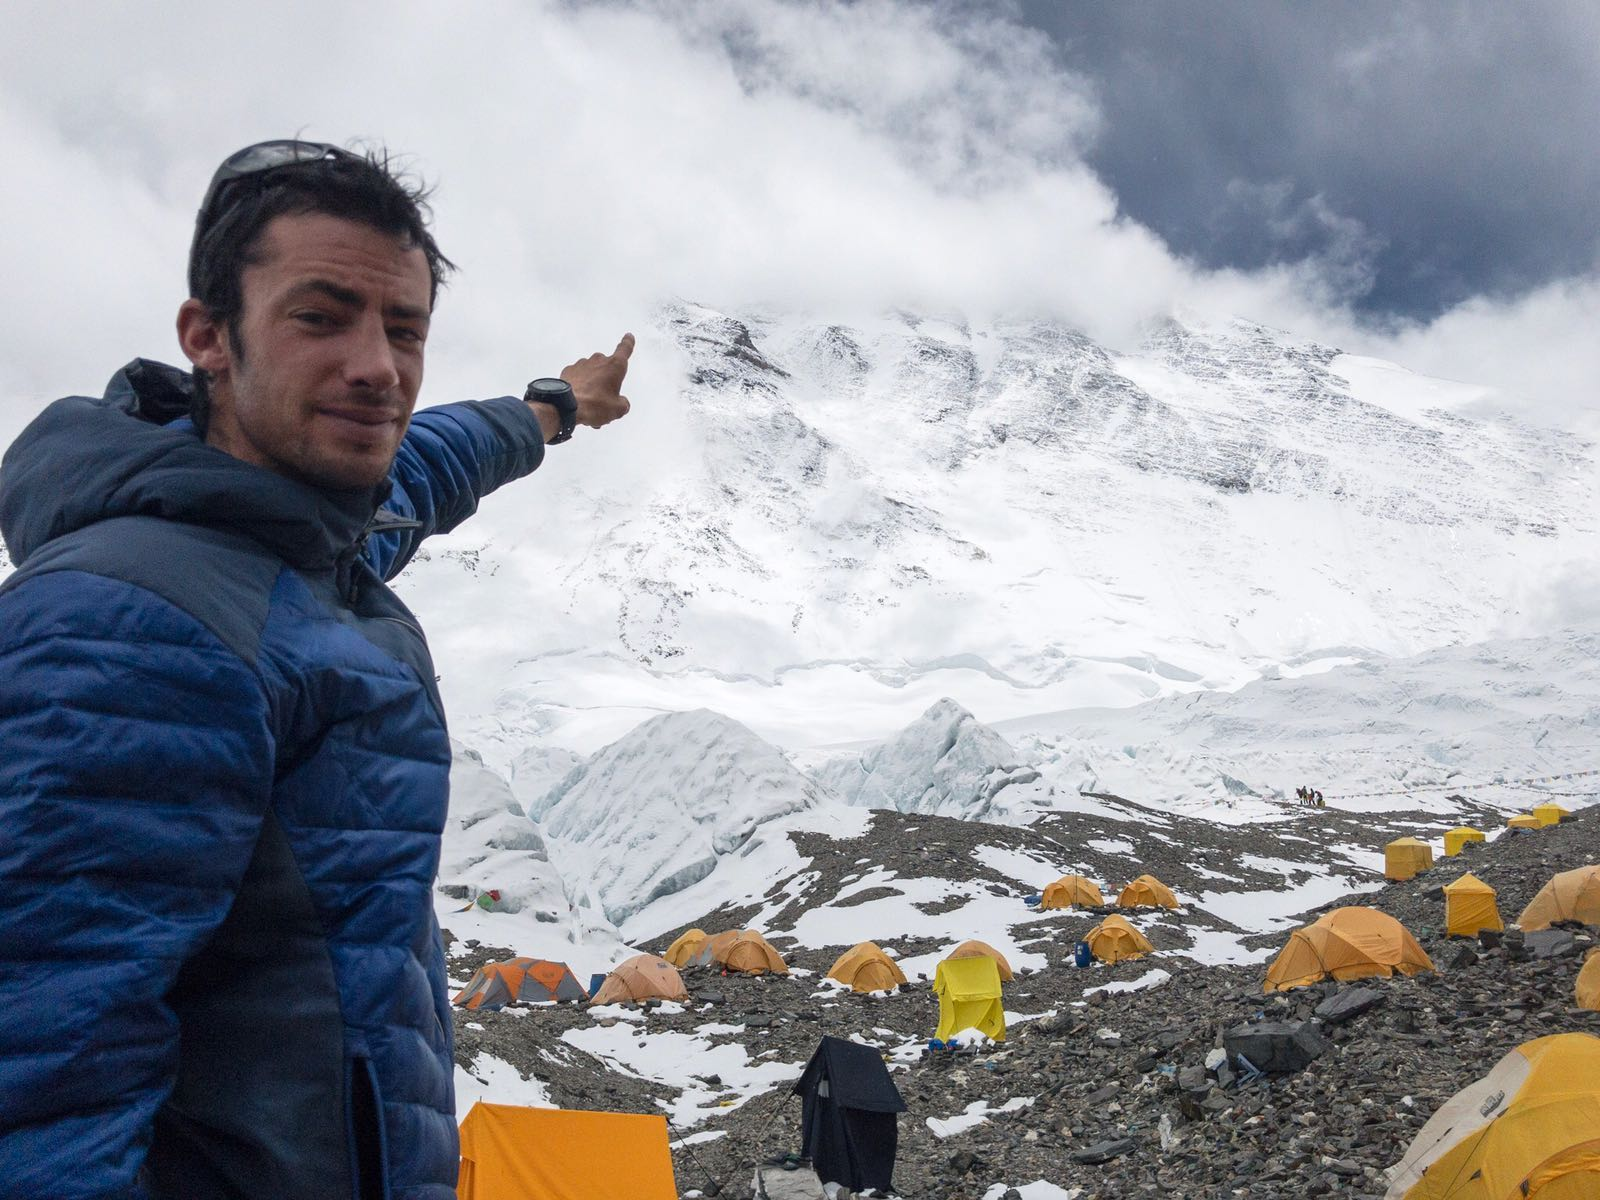 Kilian Jornet points to Mt. Everest's shrouded summit while acclimatizing for his first speed ascent of the North Col route. [Photo] Sebastien Montaz-Rosset/Kilian Jornet collection